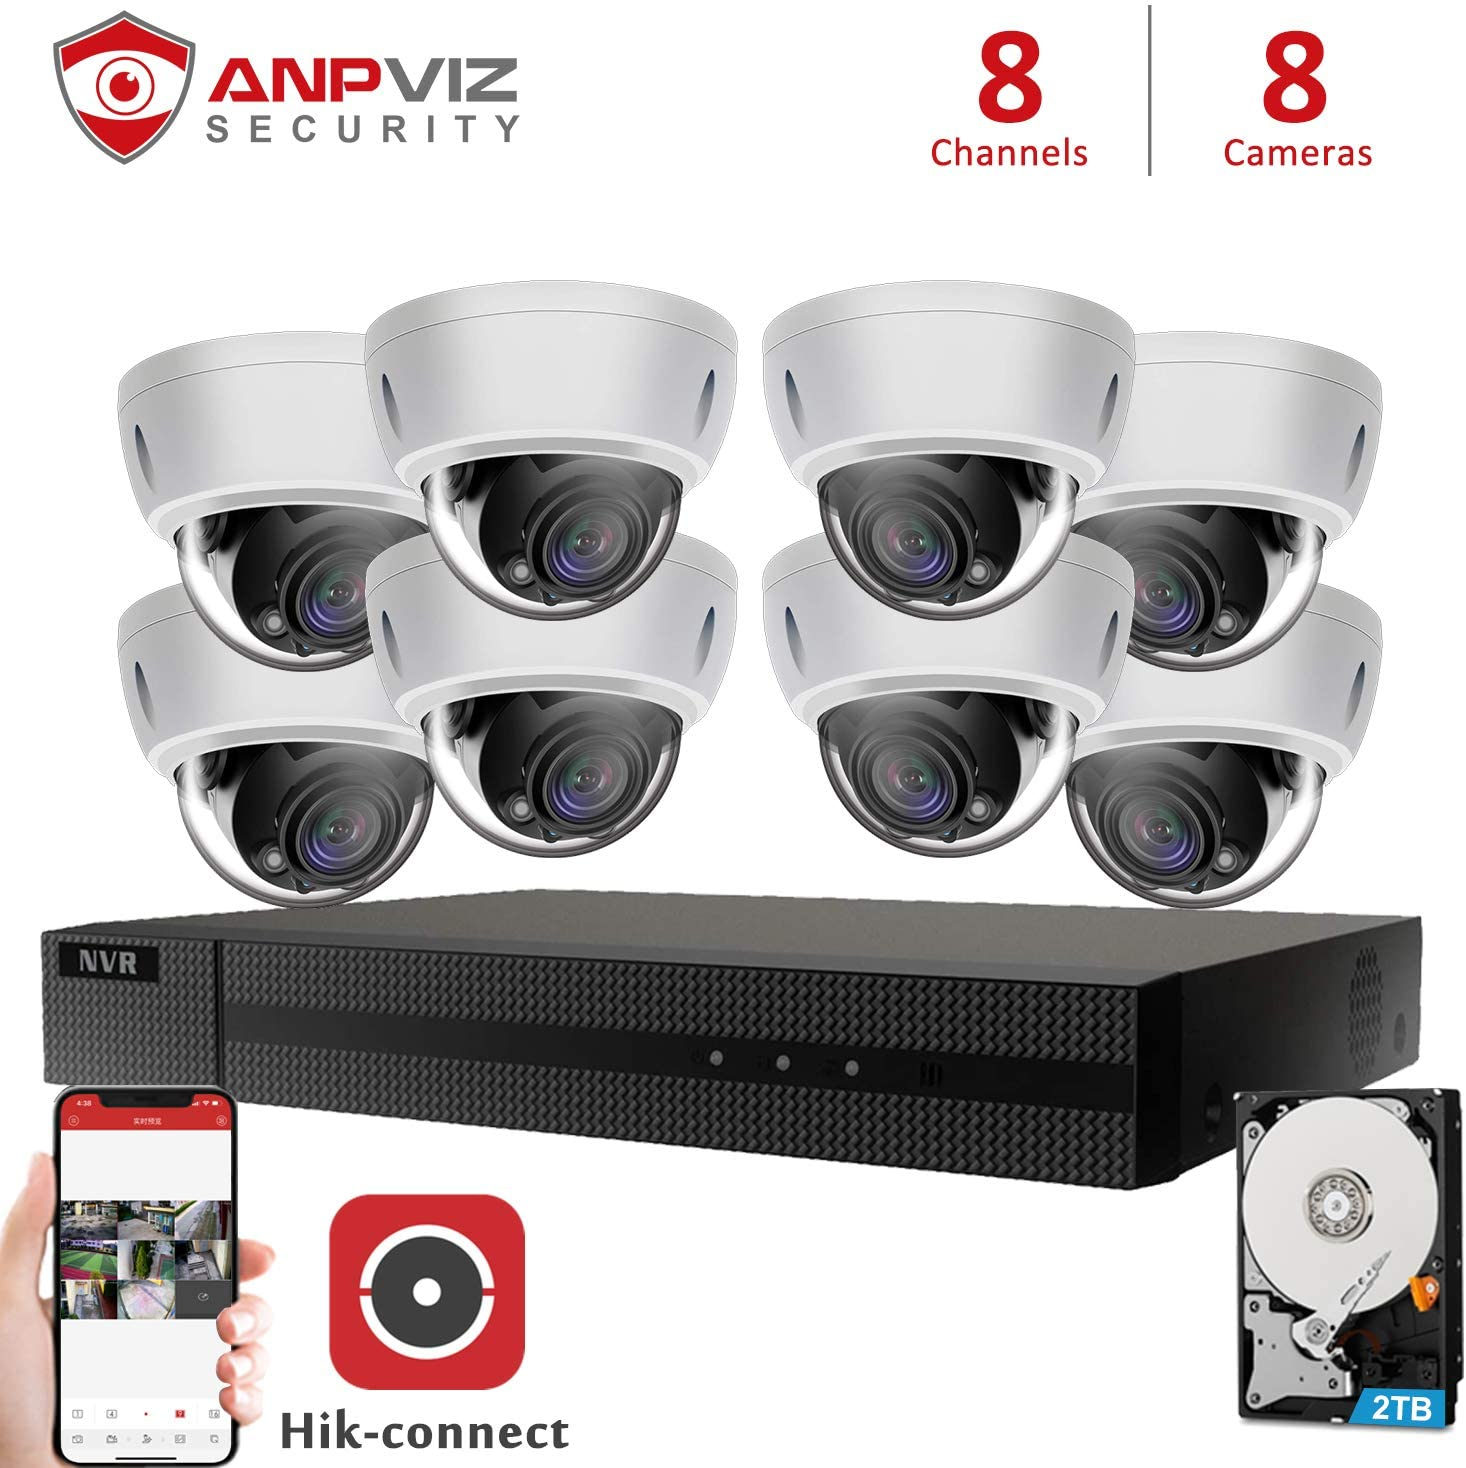 Anpviz 5MP 8 Channel Security Camera NVR System, 8CH 4K H.265 NVR with 2TB HDD with 8pcs White 5MP Dome Outdoor IP POE Cameras Home Security System with Audio, Weatherproof, 98ft Night Vision